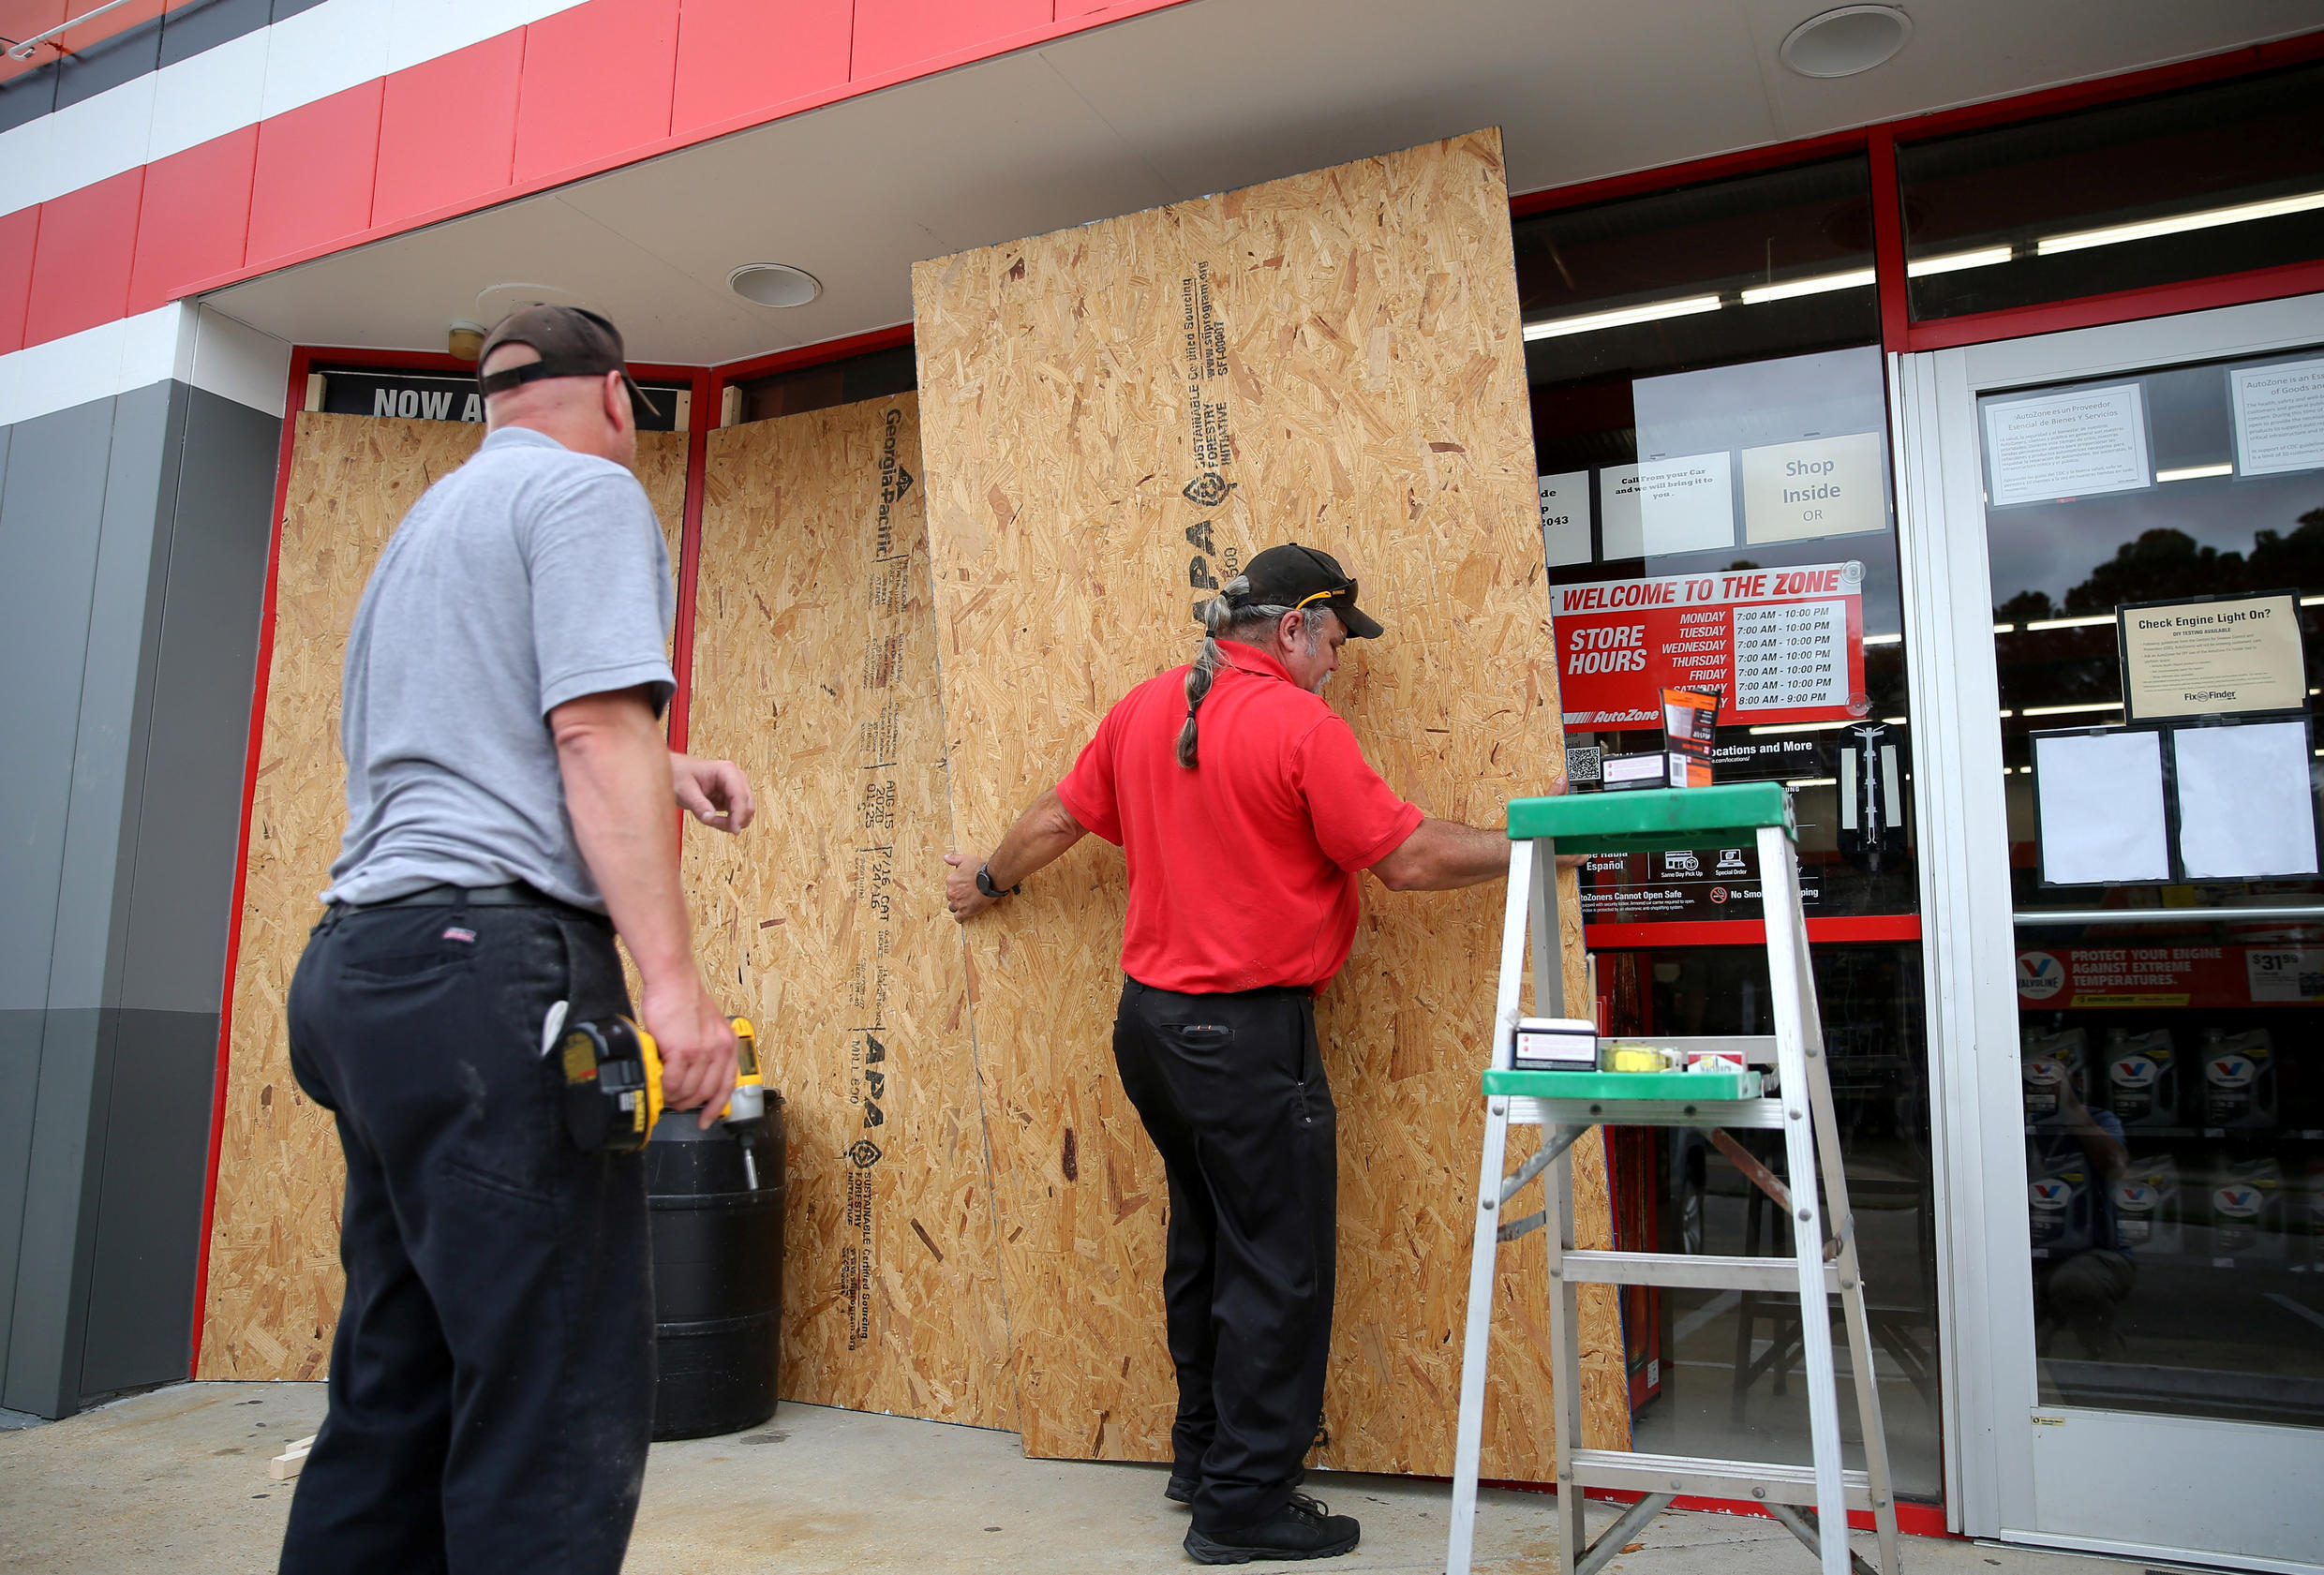 Alex Vidmar, left, and Darrin Manning board up a business as Hurricane Sally approaches in Ocean Springs, Mississippi, U.S., September 14, 2020.